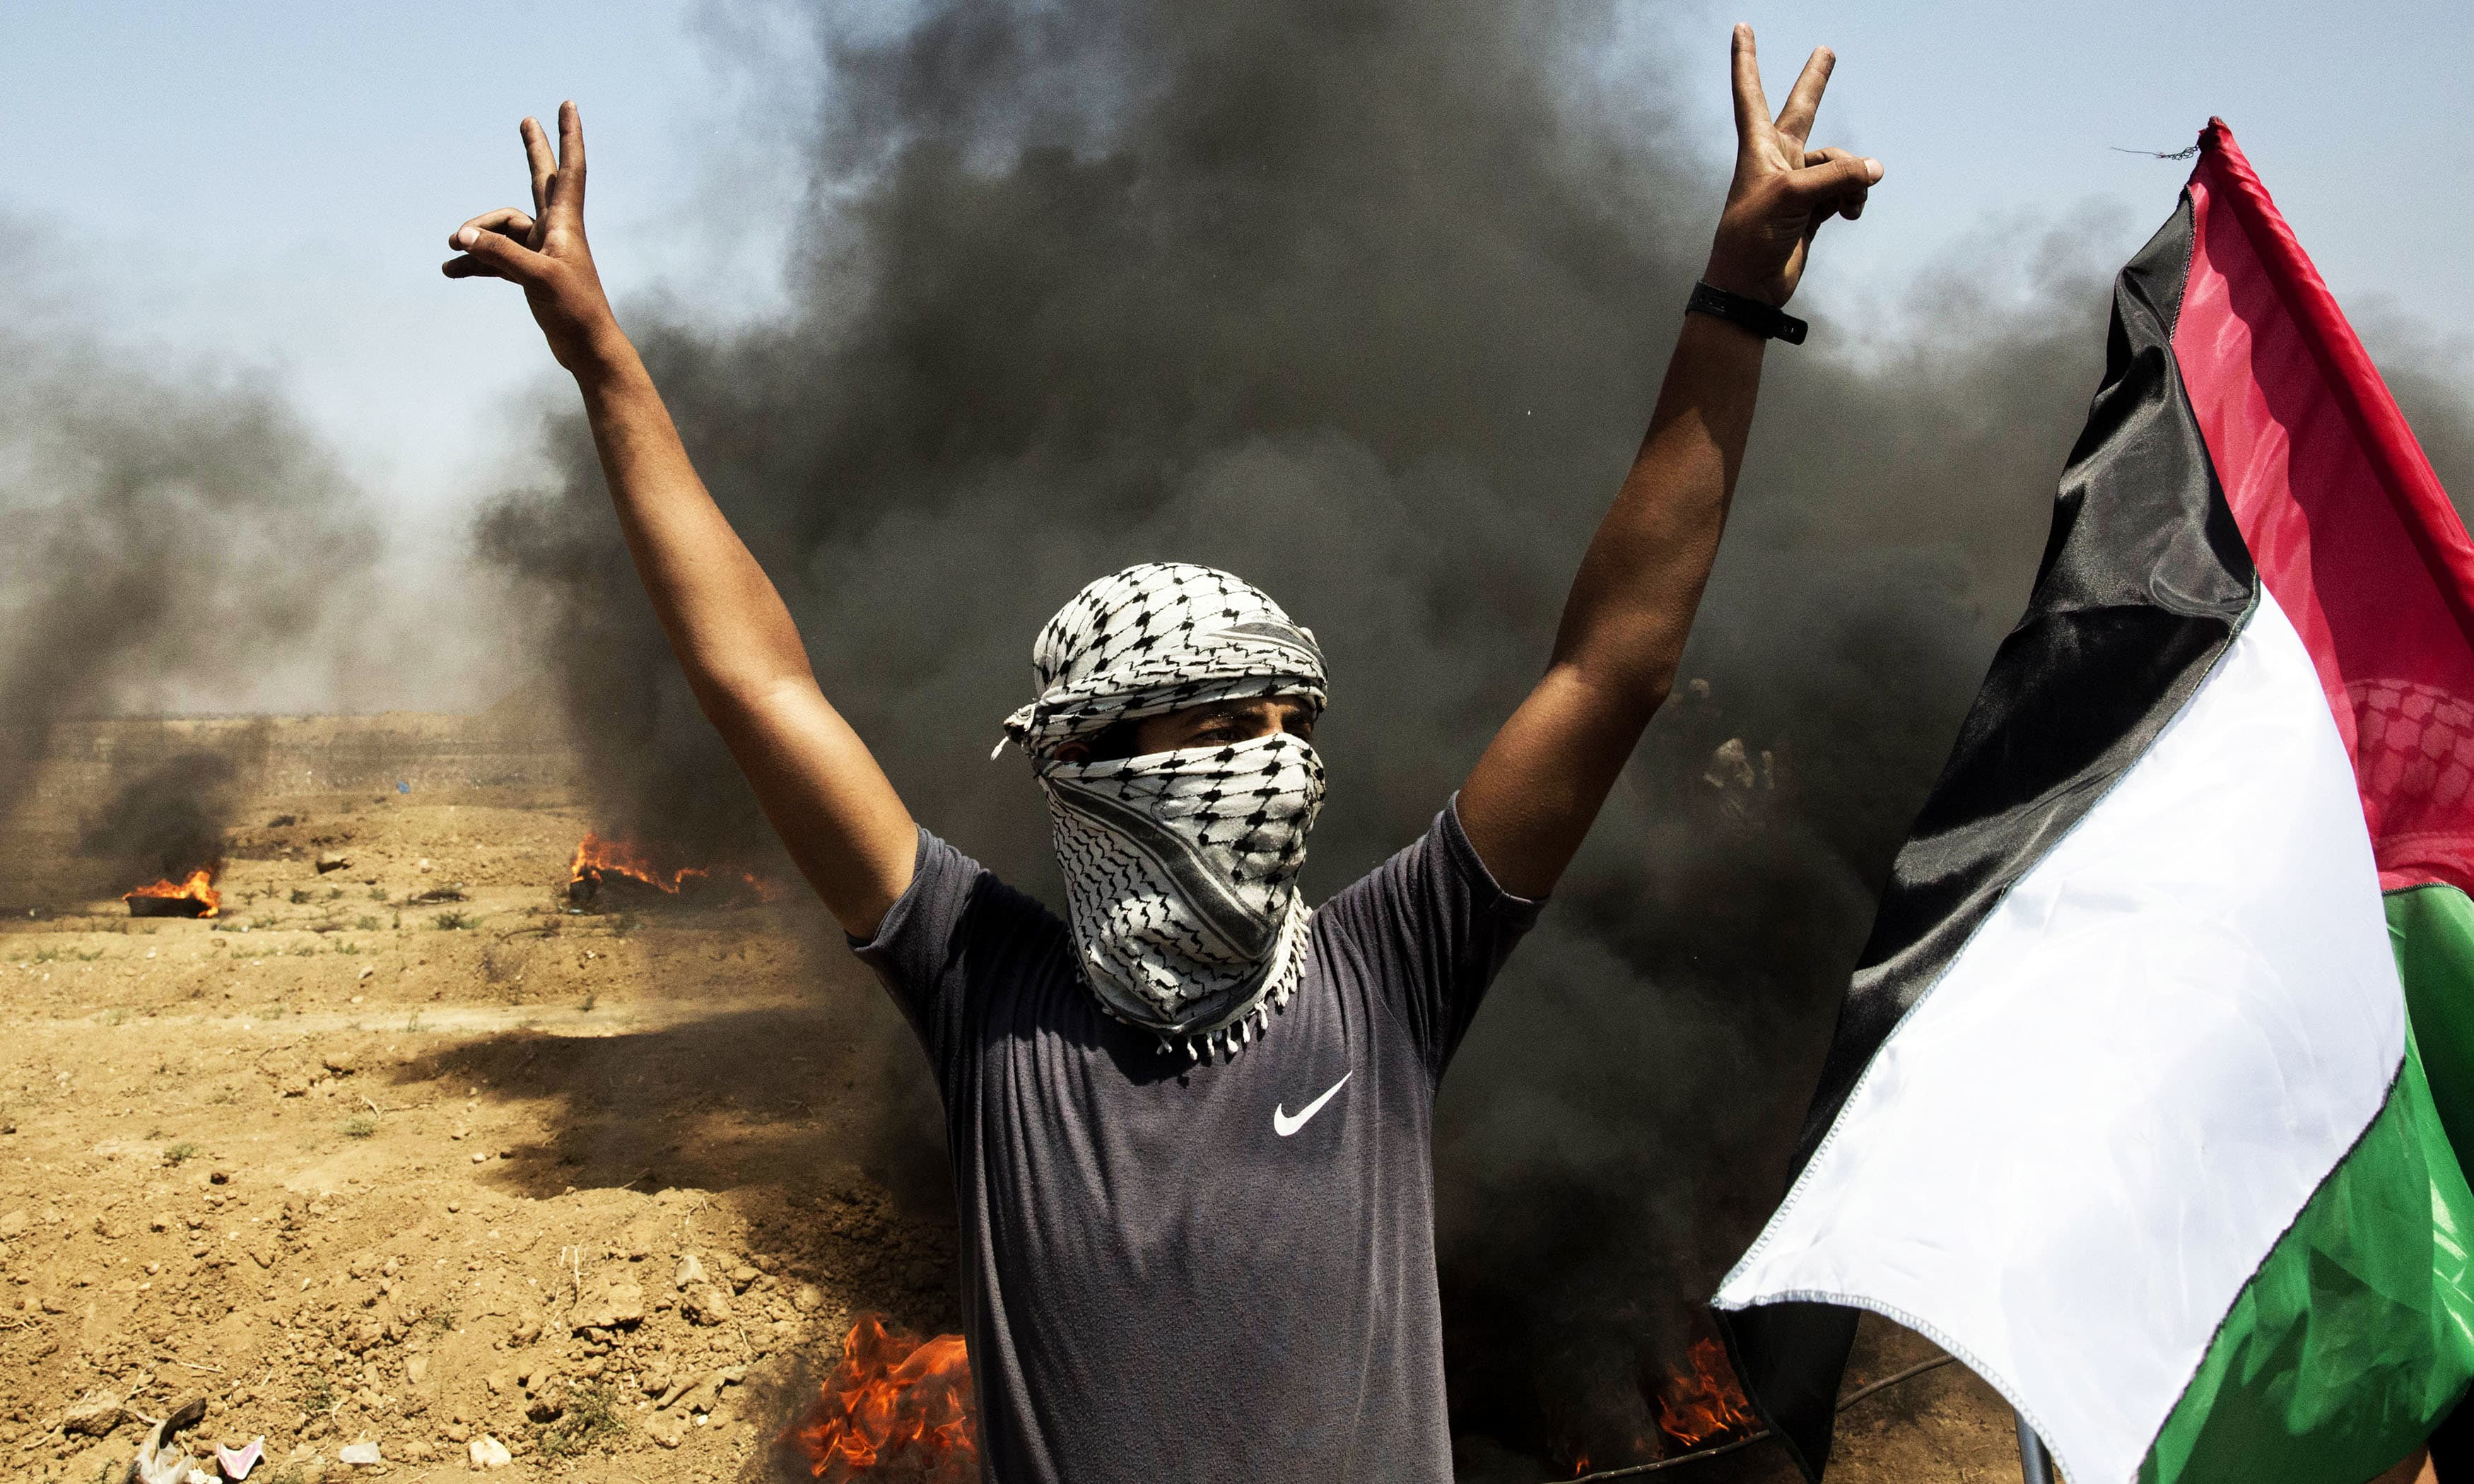 A Palestinian protester flashes victory signs while standing next to burning tires during a protest at the Gaza Strip's border with Israel. —AP